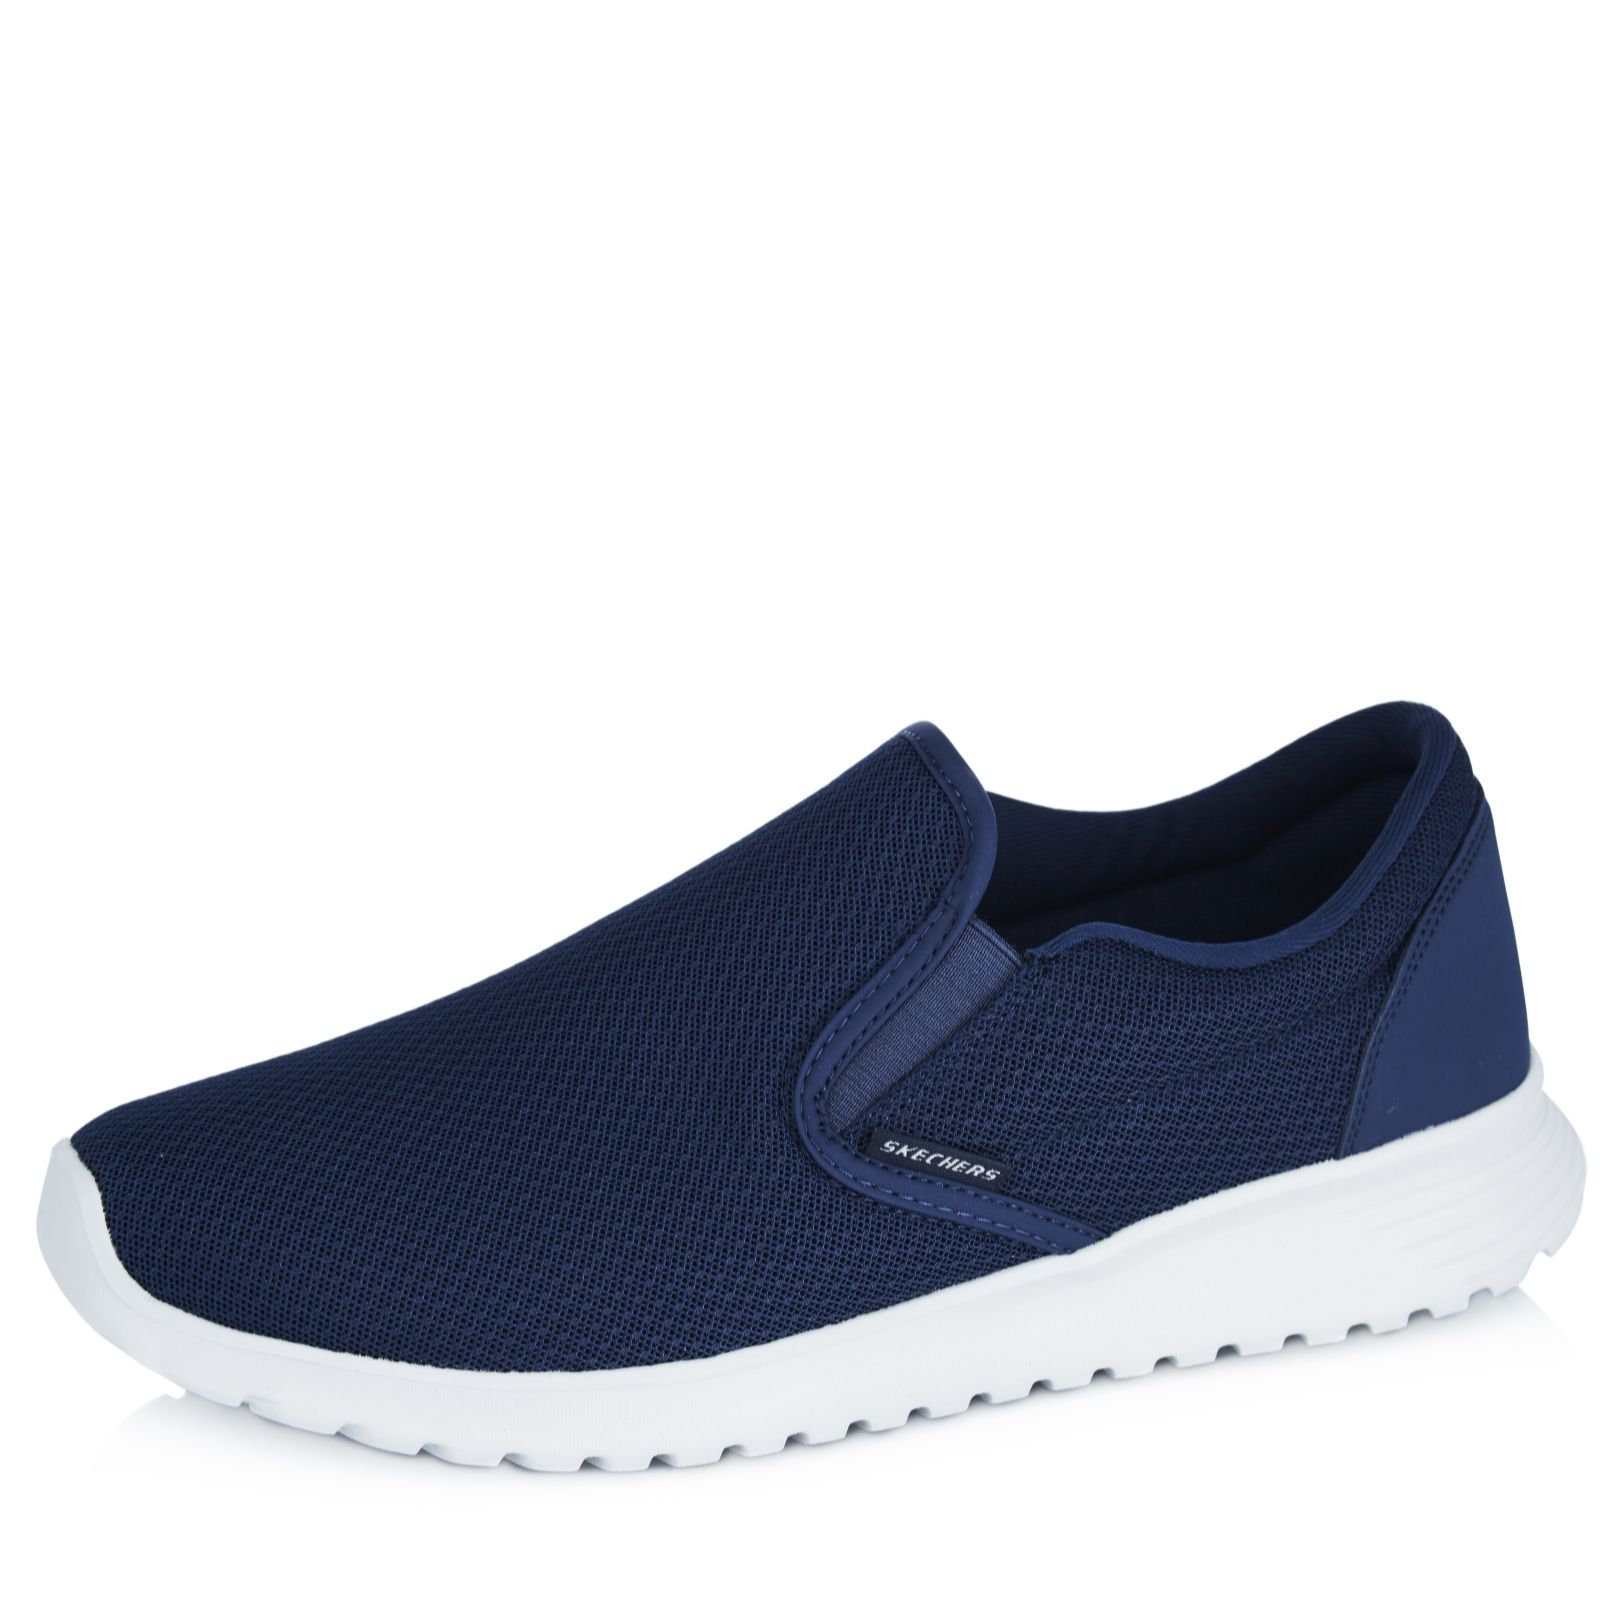 92d5d784aa1 Skechers Zimsey Mesh Men s Slip On Shoe with Air Cooled Memory Foam - QVC UK